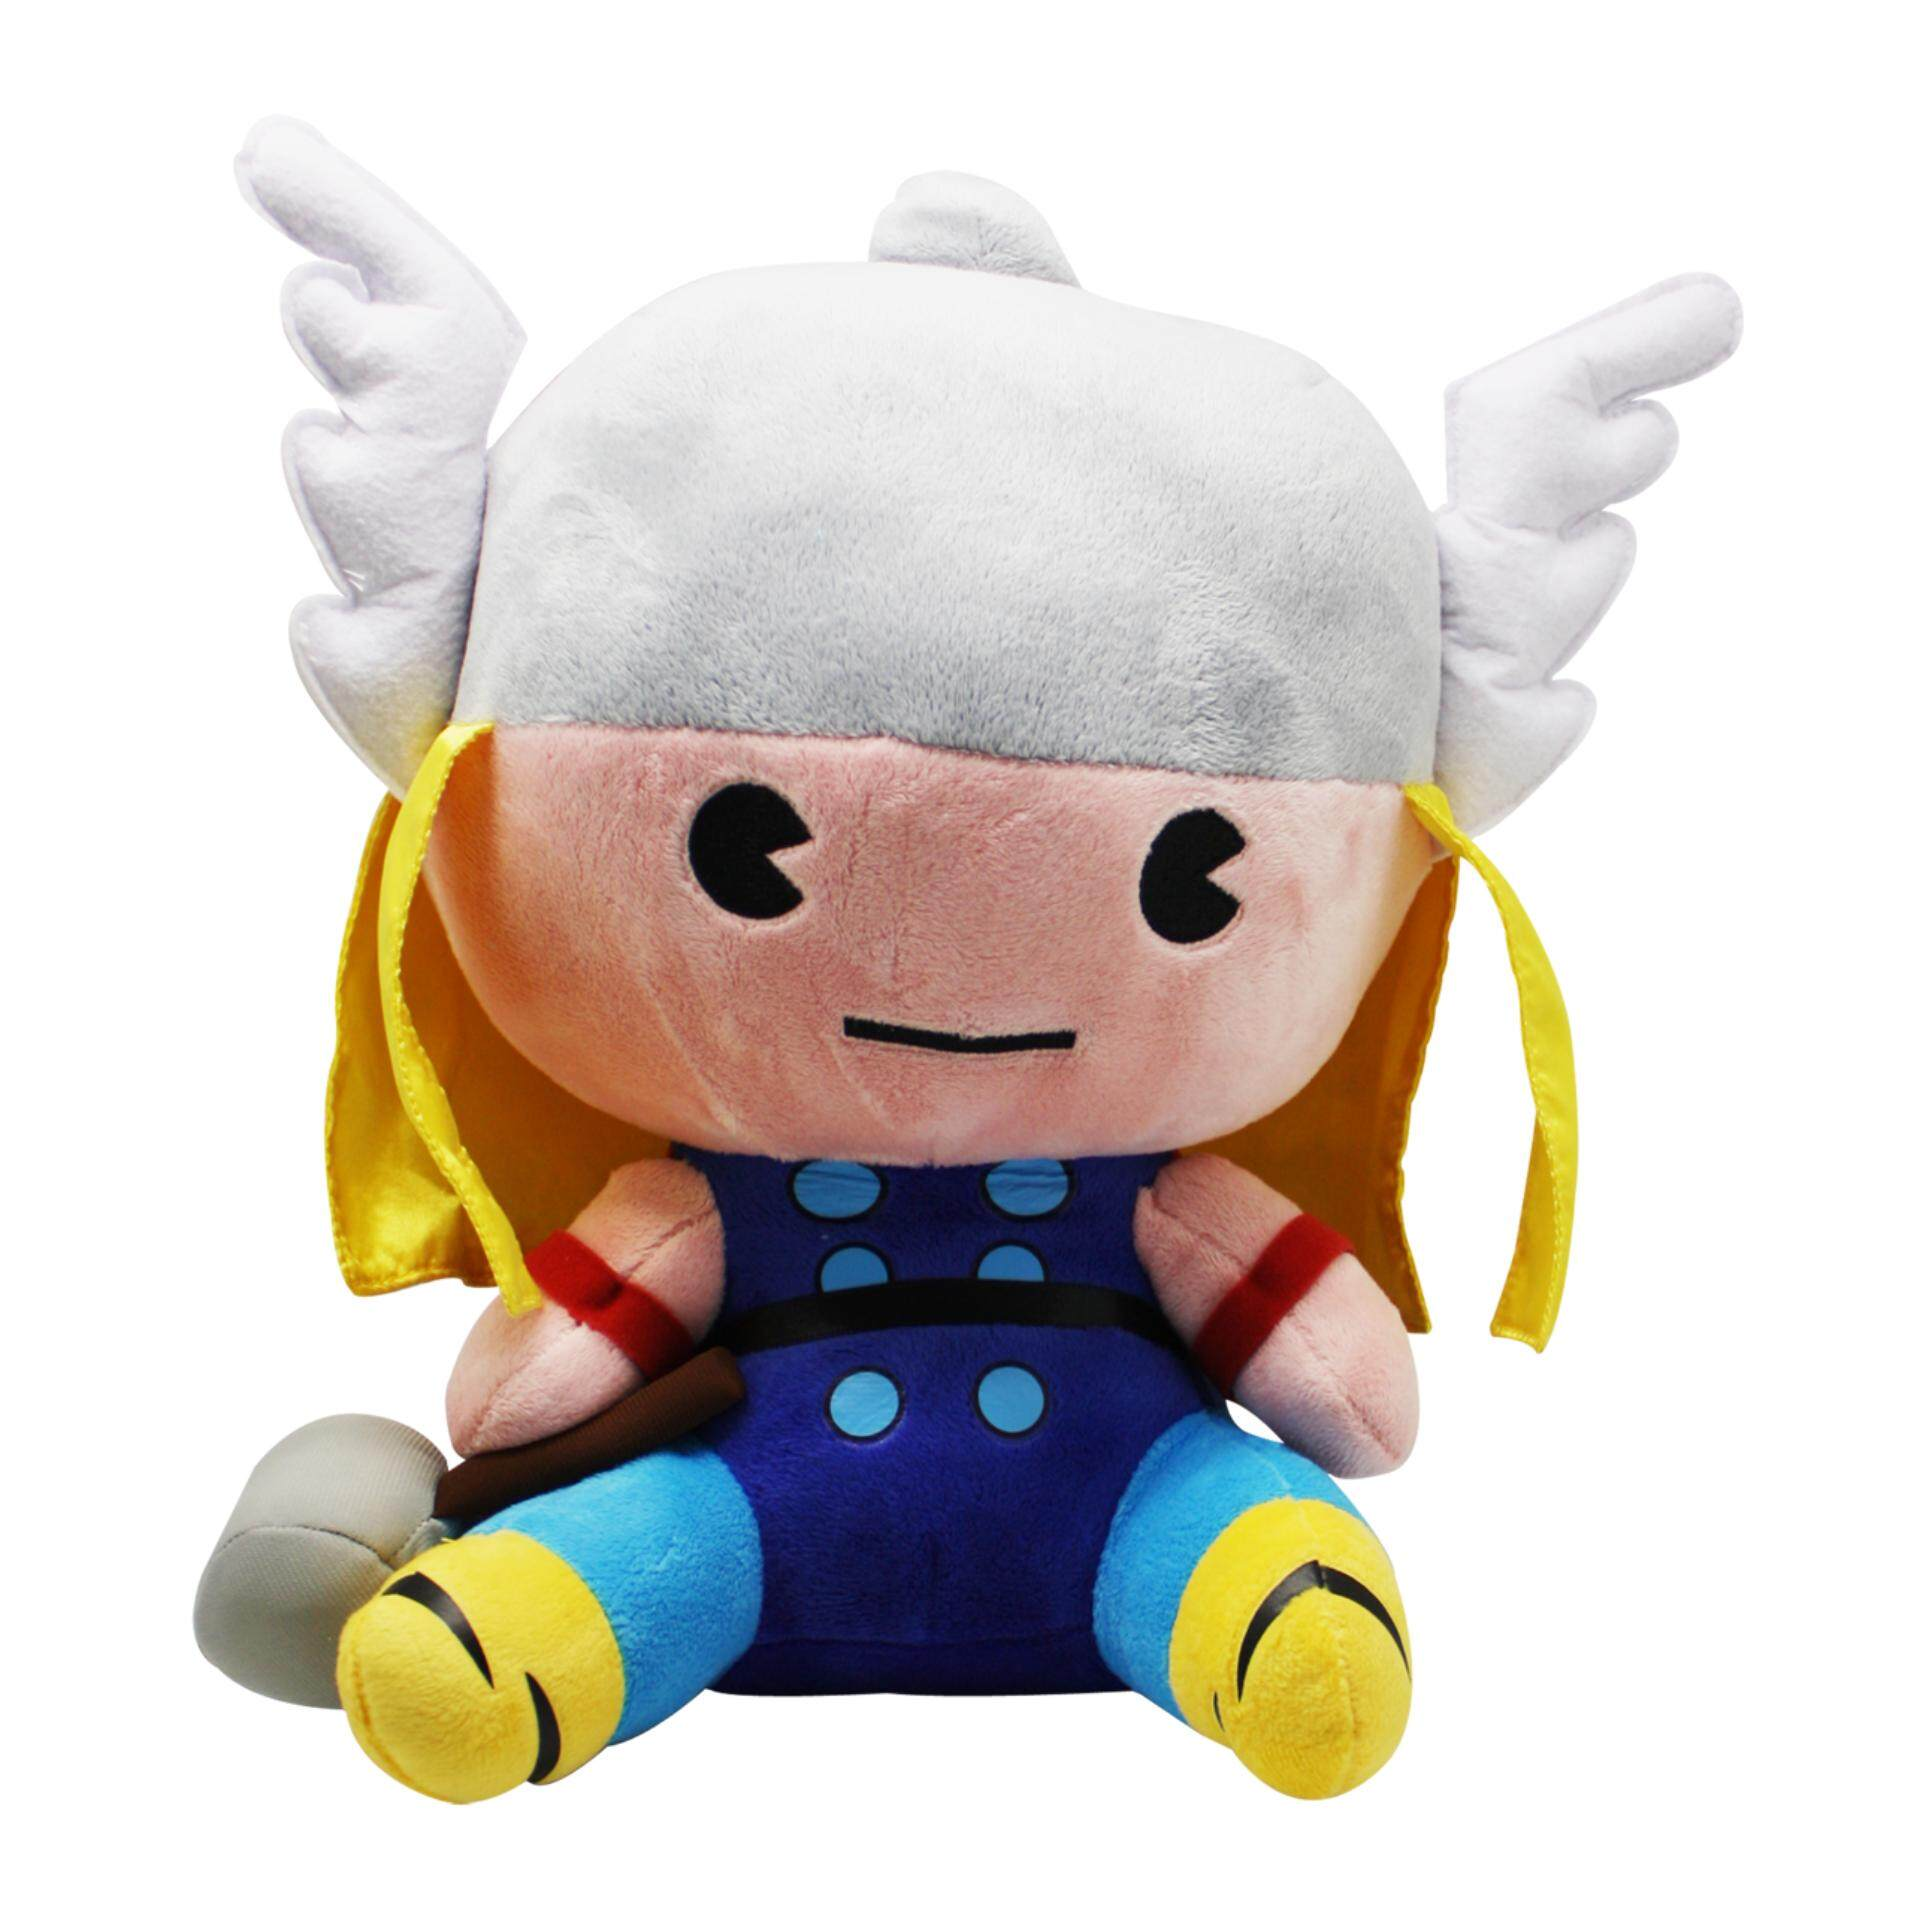 Marvel Avengers Kawaii Plush Toys 12 Inches - Thor